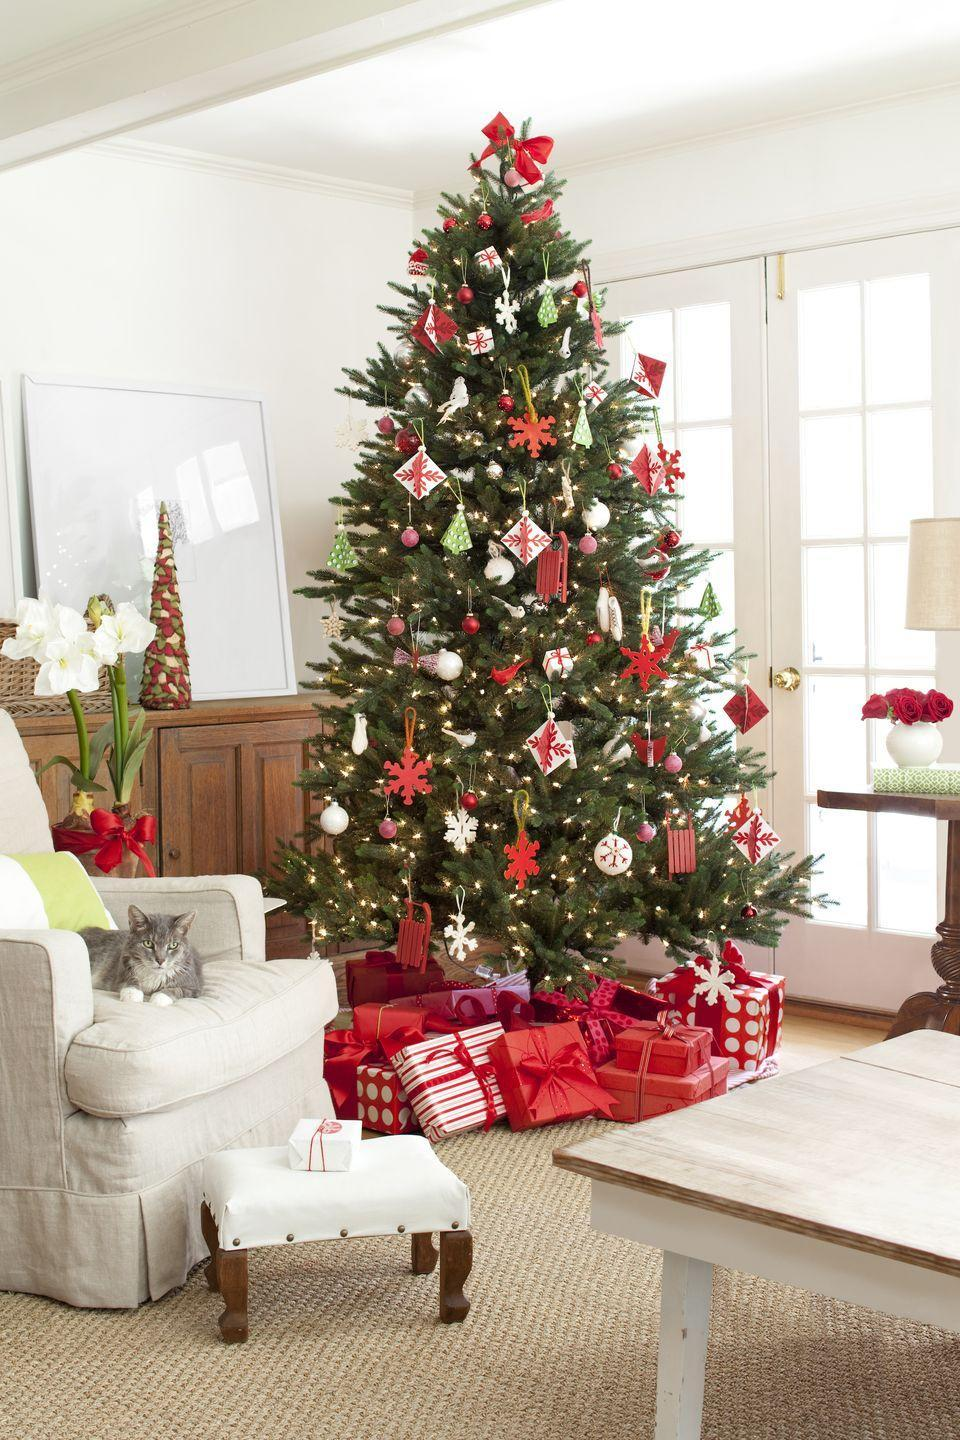 <p>Red and white is tried and true, and here's proof: An eclectic assortment of snowflakes, turtle doves, stars, sleds, and balls look perfectly coordinated in the same color scheme.</p>